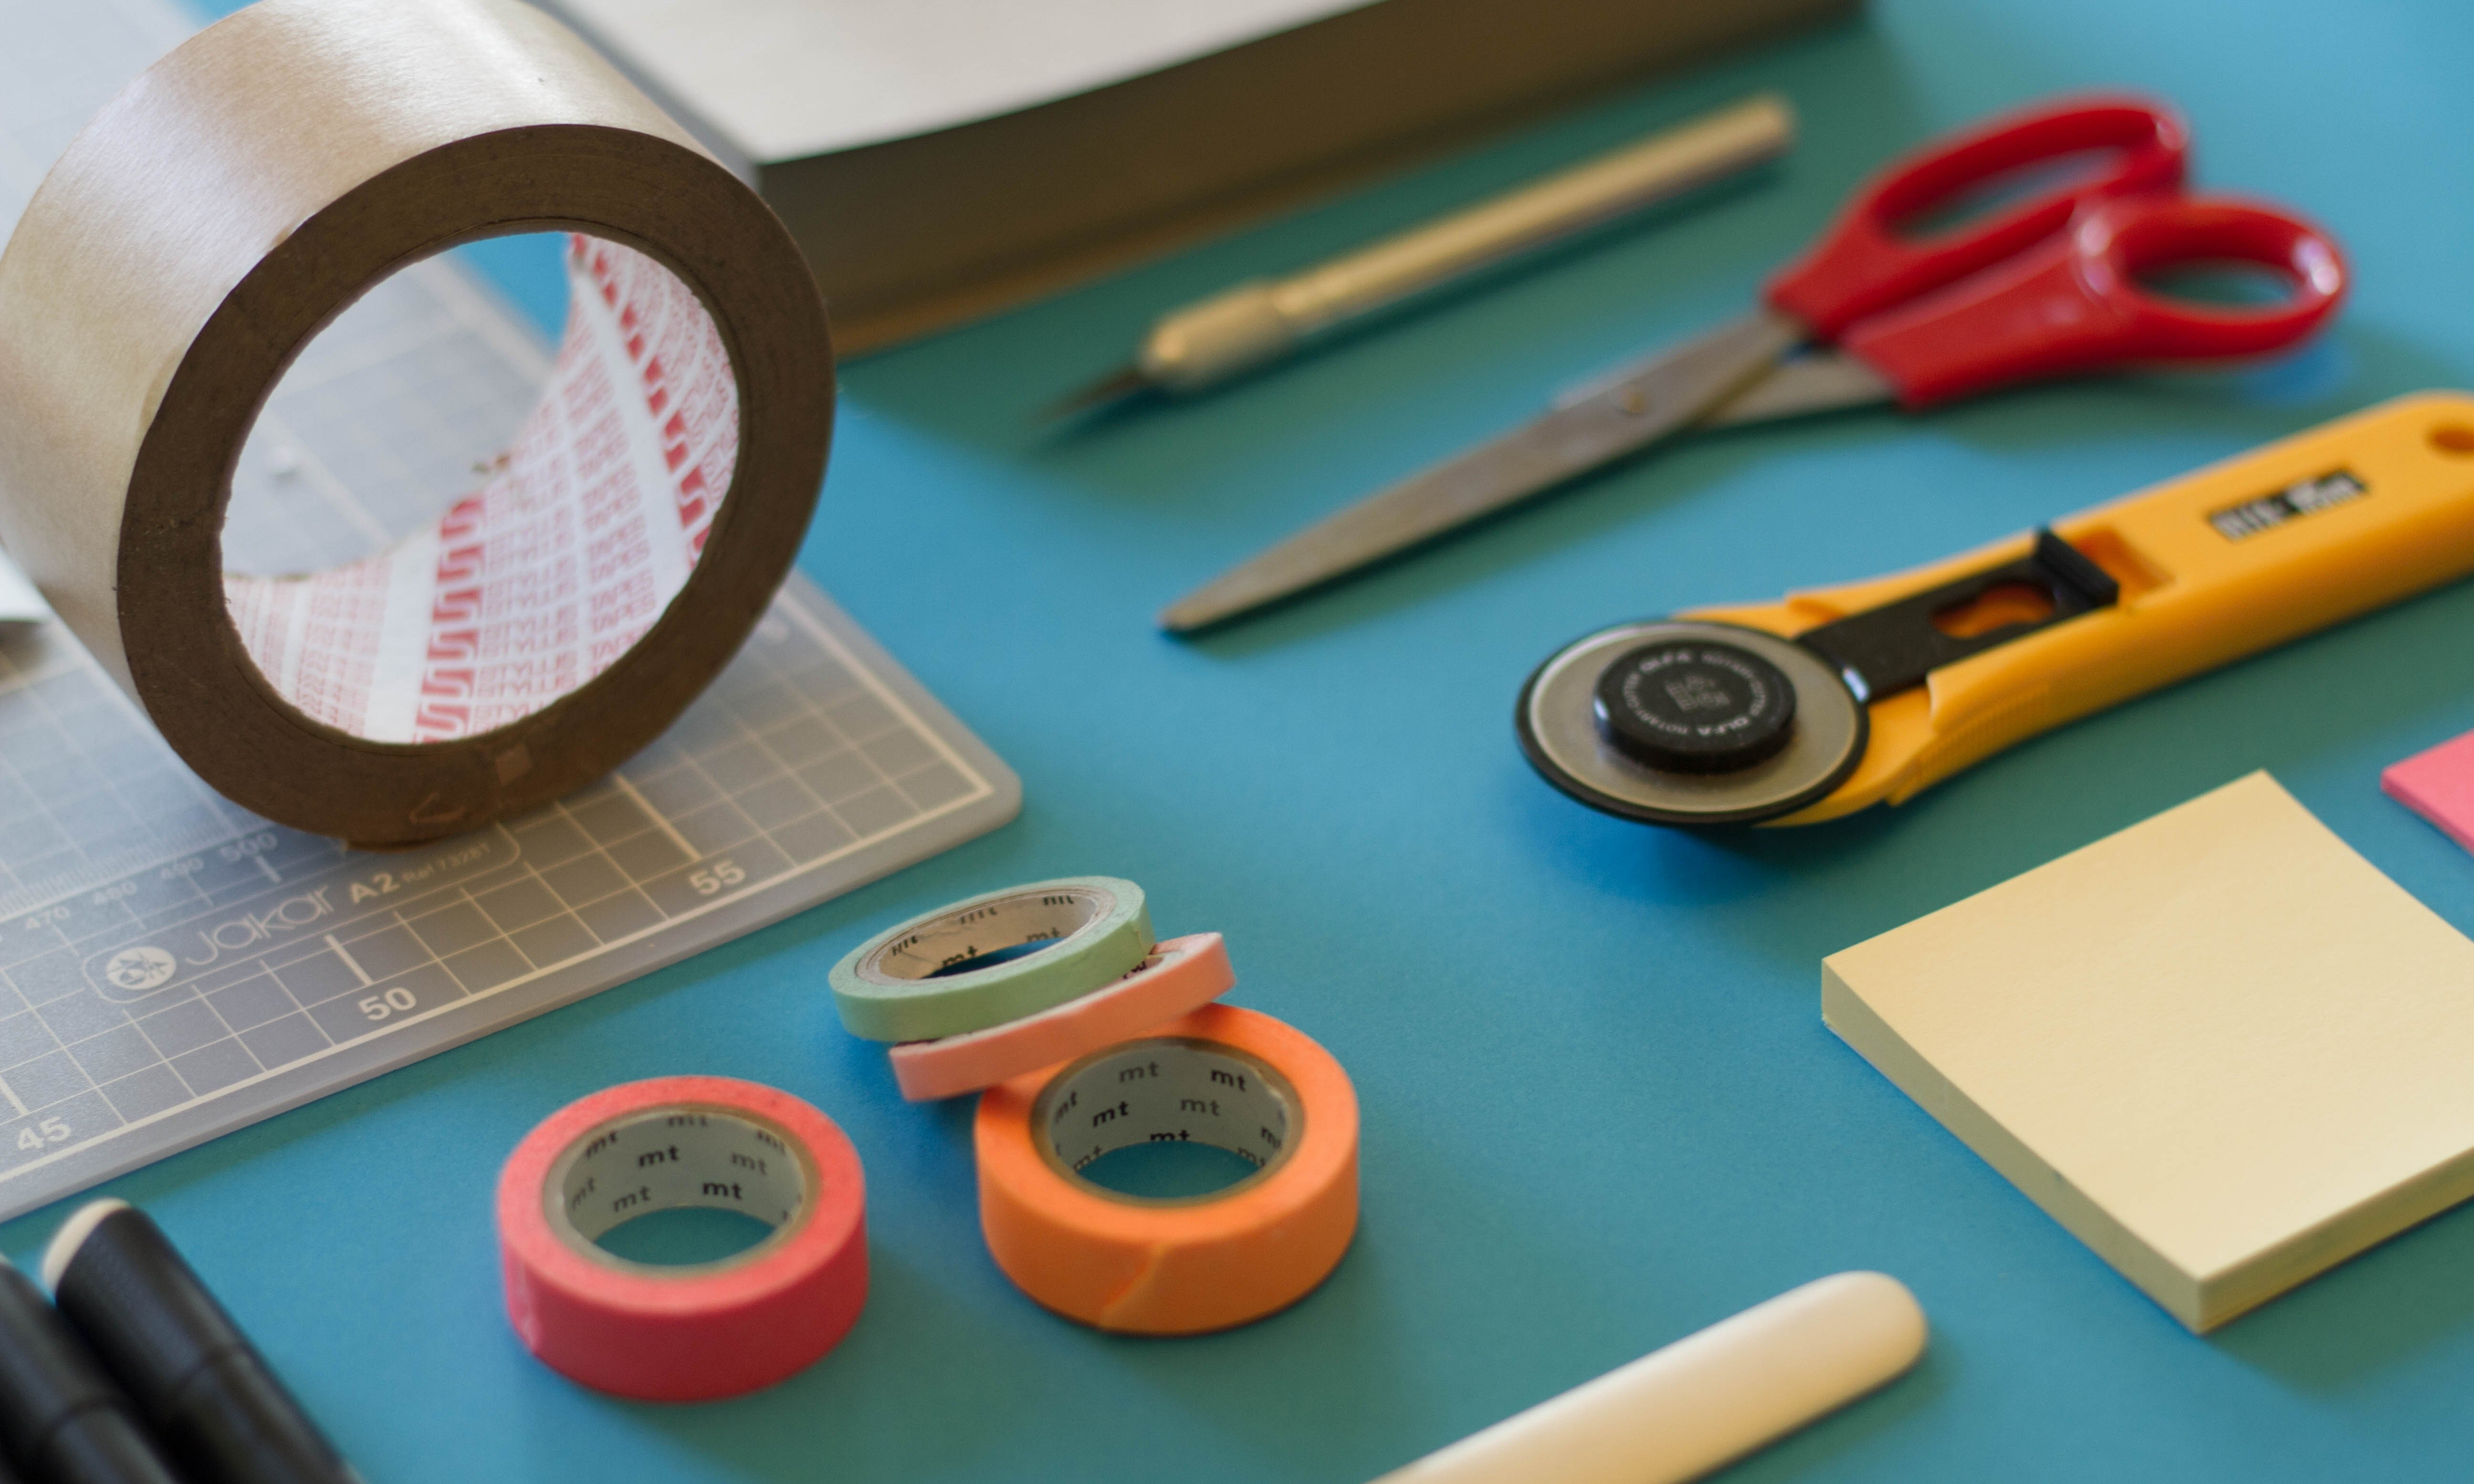 Human-Centred Design and Prototyping Workshops Coming to Winnipeg and Guelph